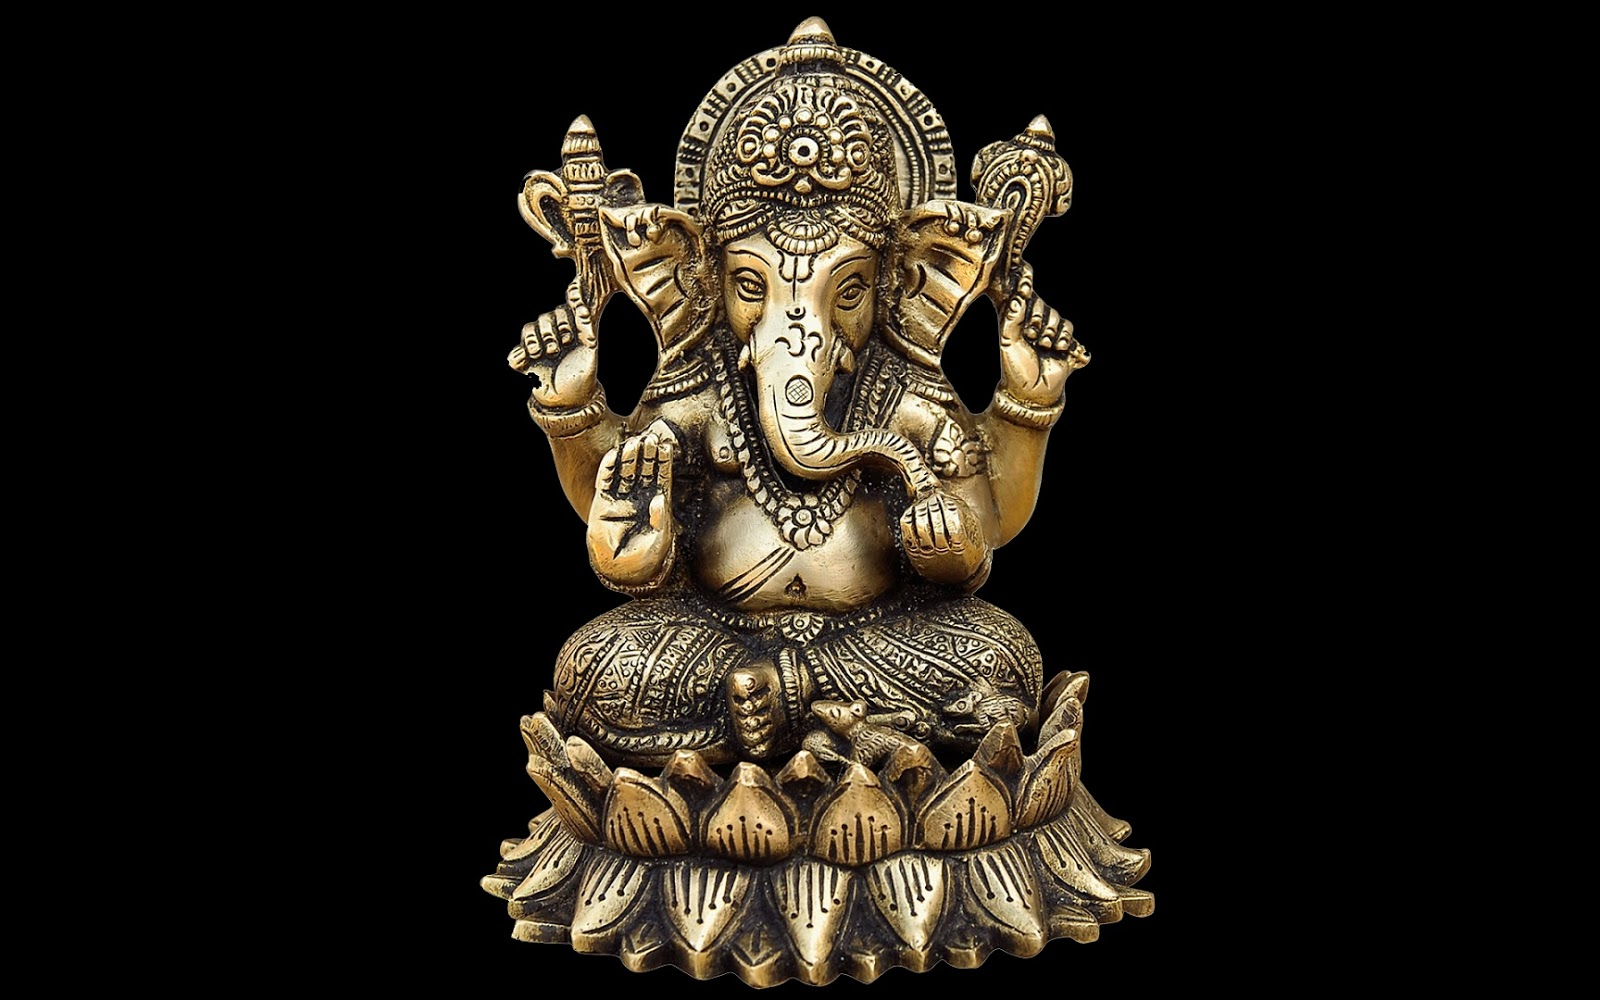 happy vinayaka chavithi lokamanya perceived how lord ganesha was venerated by the upper stratum and in addition the general population of the visionary that he was